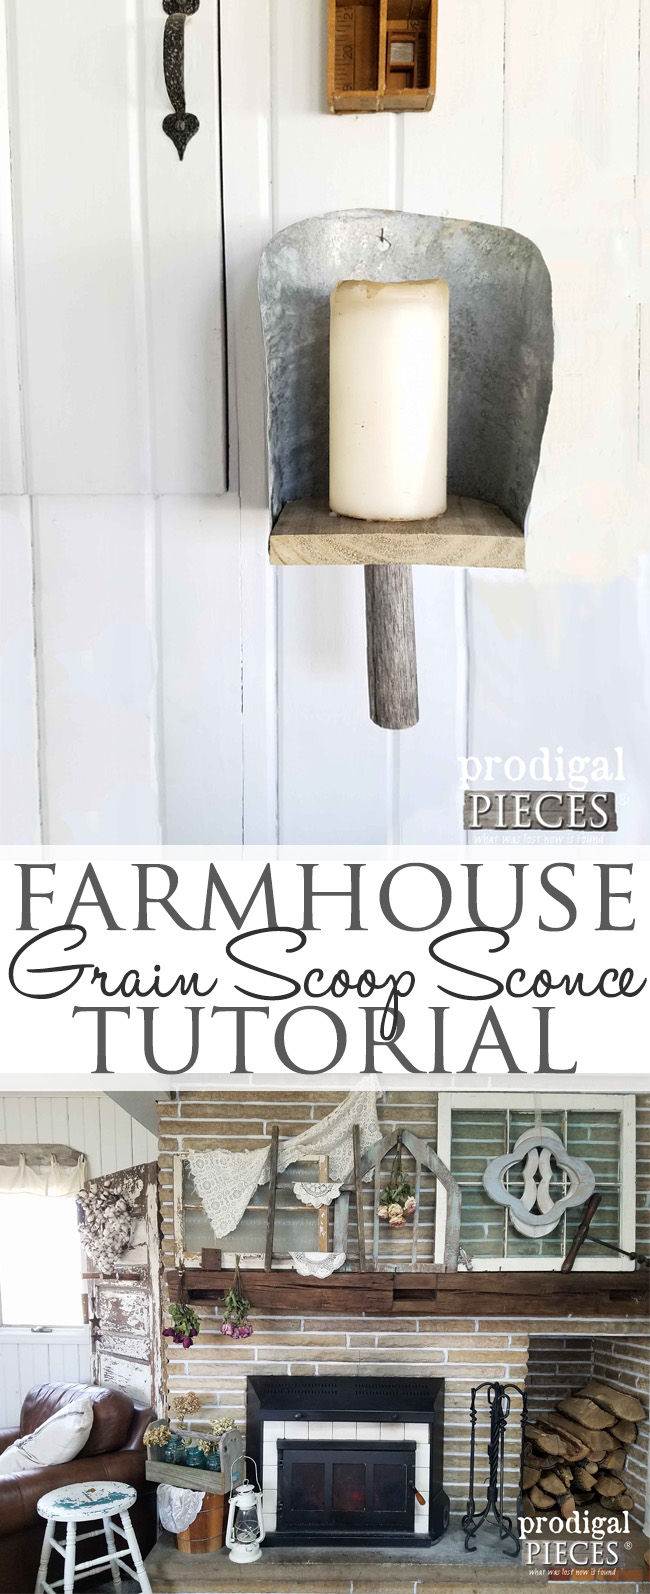 DIY Farmhouse Grain Scoop Sconce with Step-by-Step Tutorial by Prodigal Pieces | prodigalpieces.com